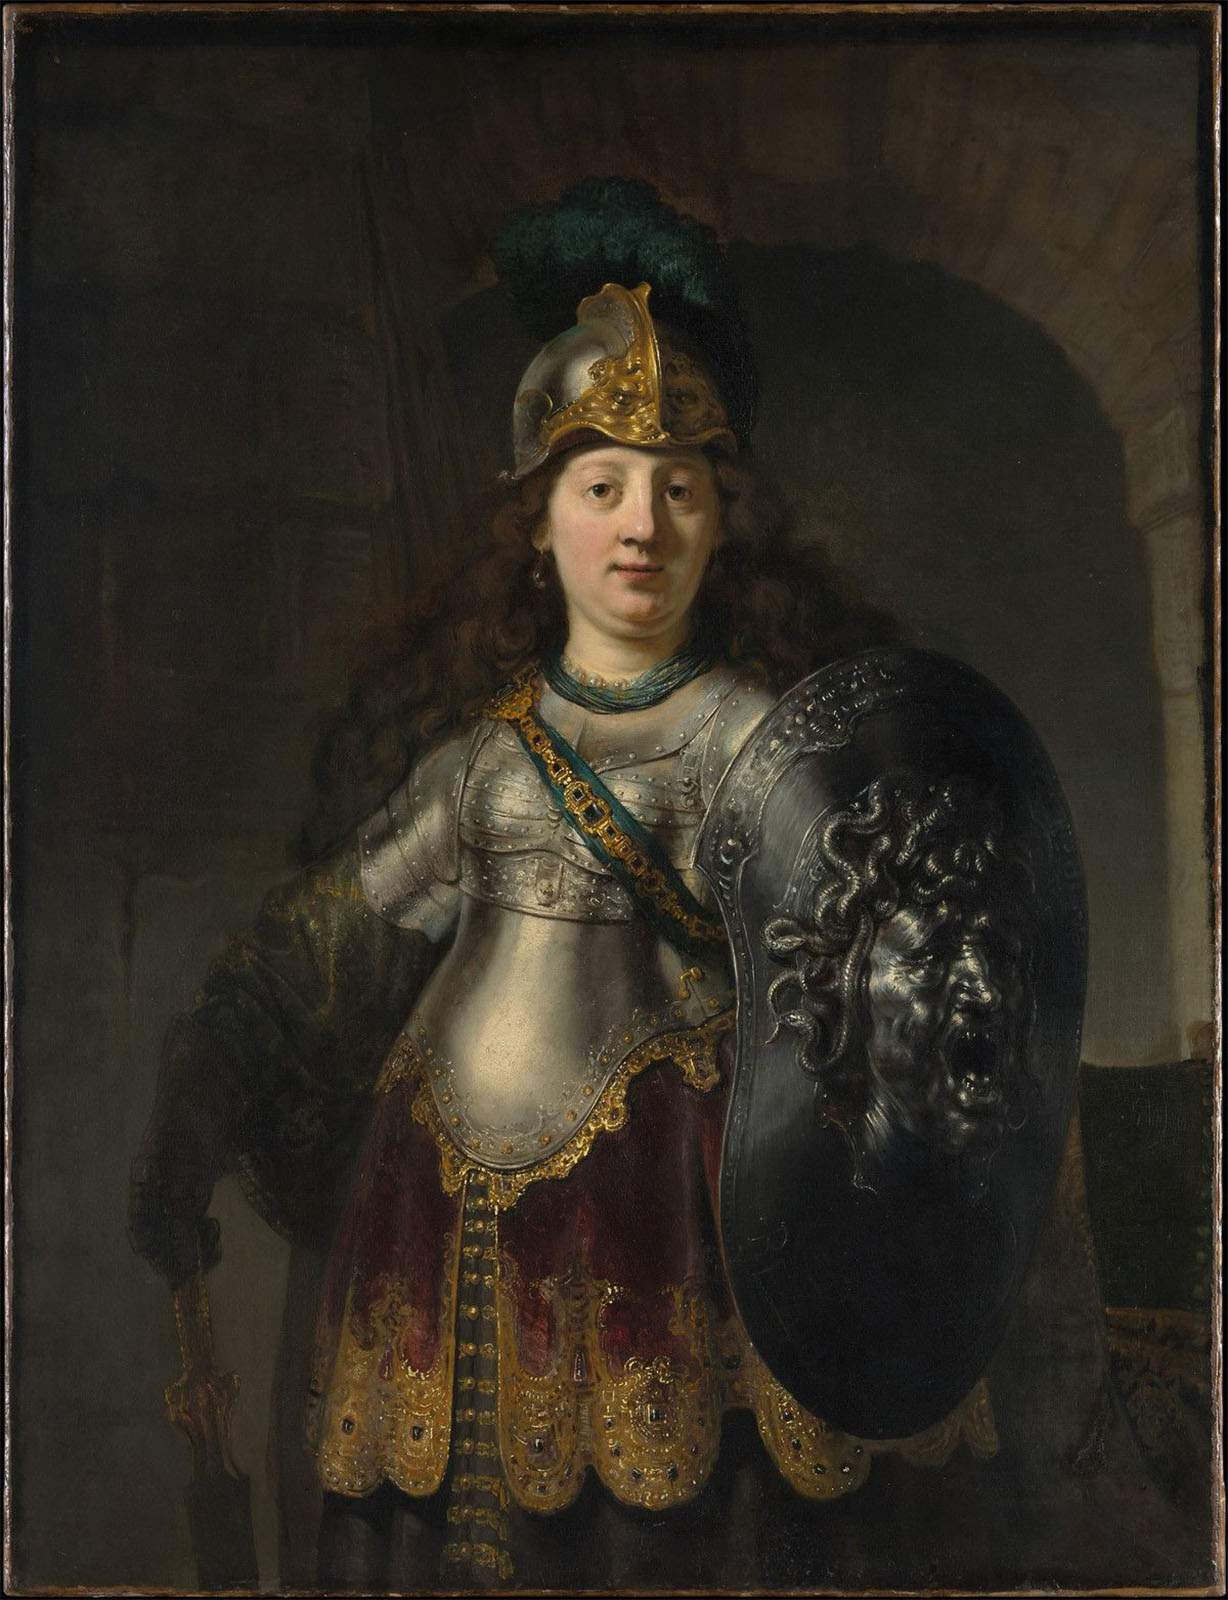 Bellona by Rembrandt in 1633